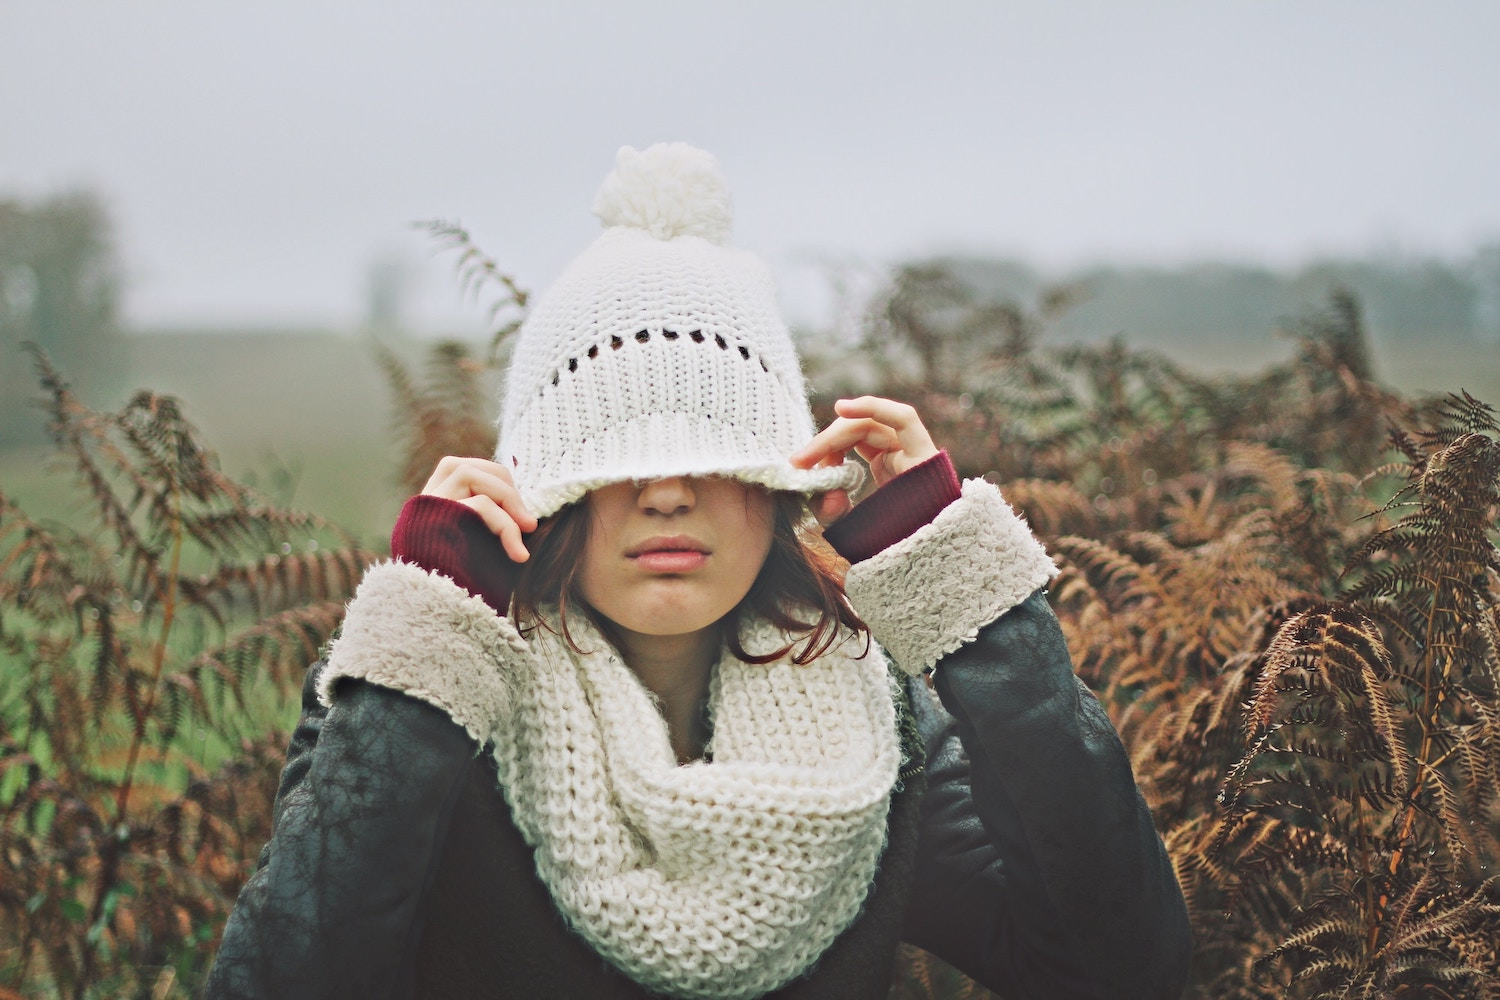 girl-covering-face-knit-cap